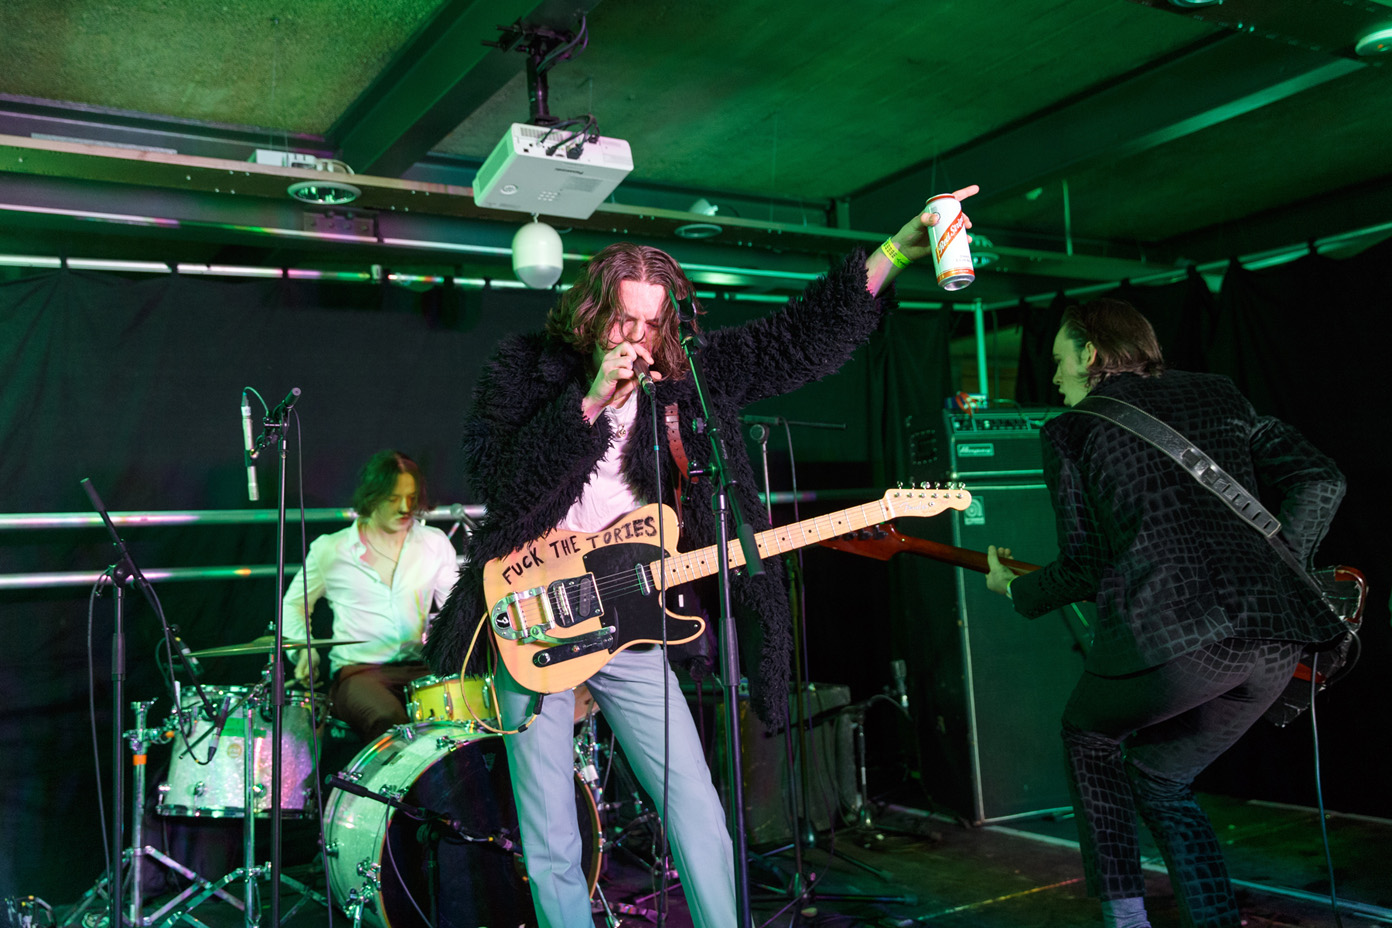 The Blinders performing at 2Q Festival in Derby, UK on 1 April 2017. Photo: Katy Blackwood